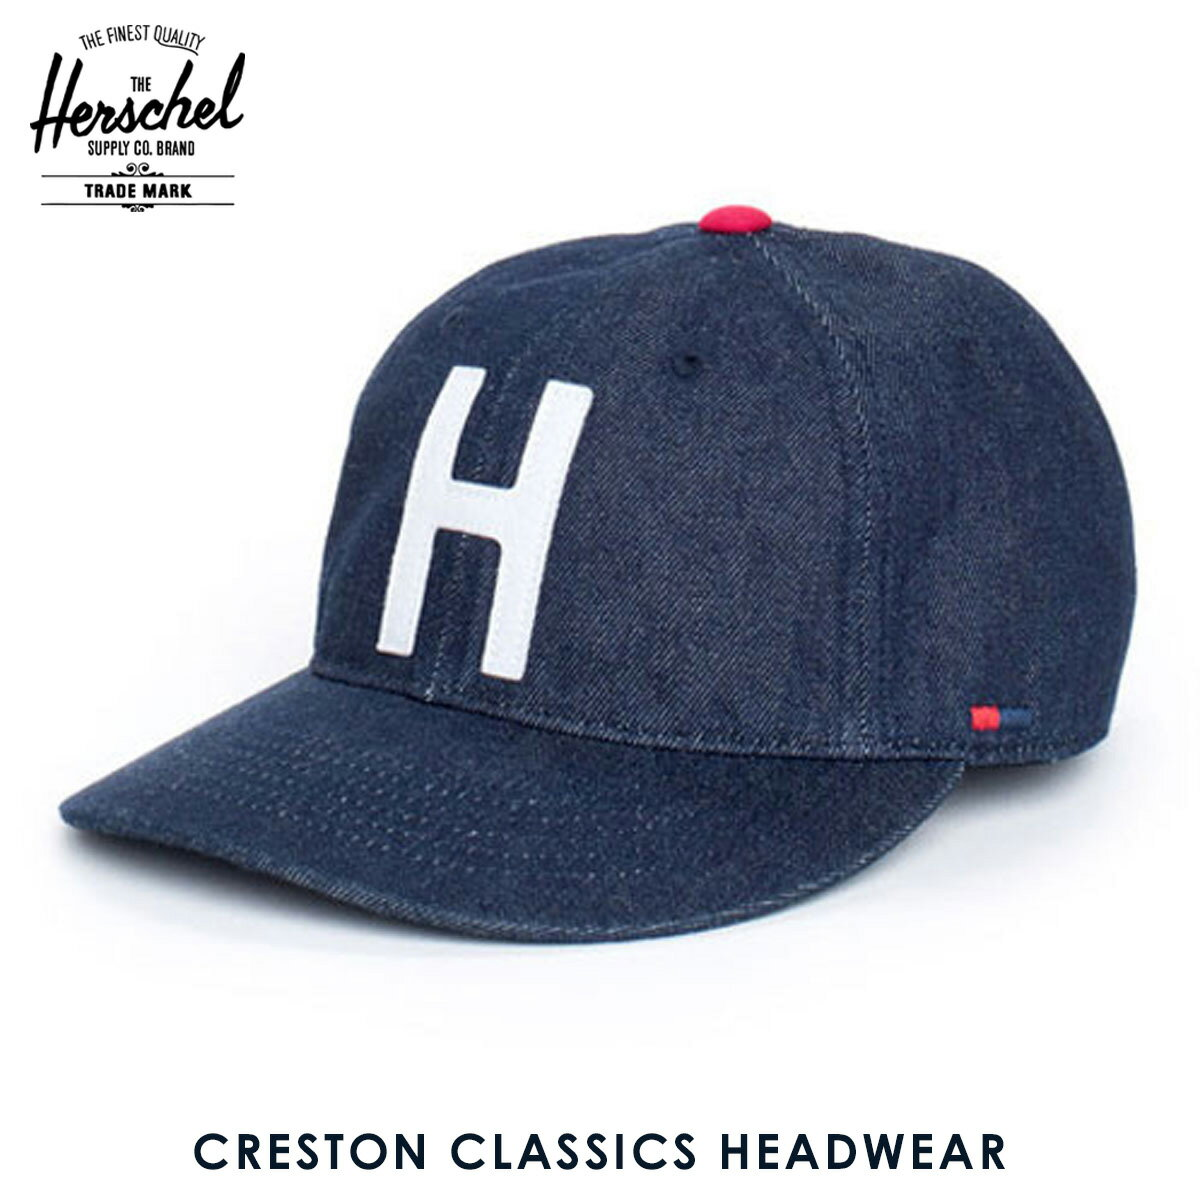 【20%OFFセール 8/17 10:00〜8/23 9:59】 ハーシェル サプライ Herschel Supply 正規販売店 キャップ Creston M/L Classics Headwear 1023-0031-ML Selvedge Denim